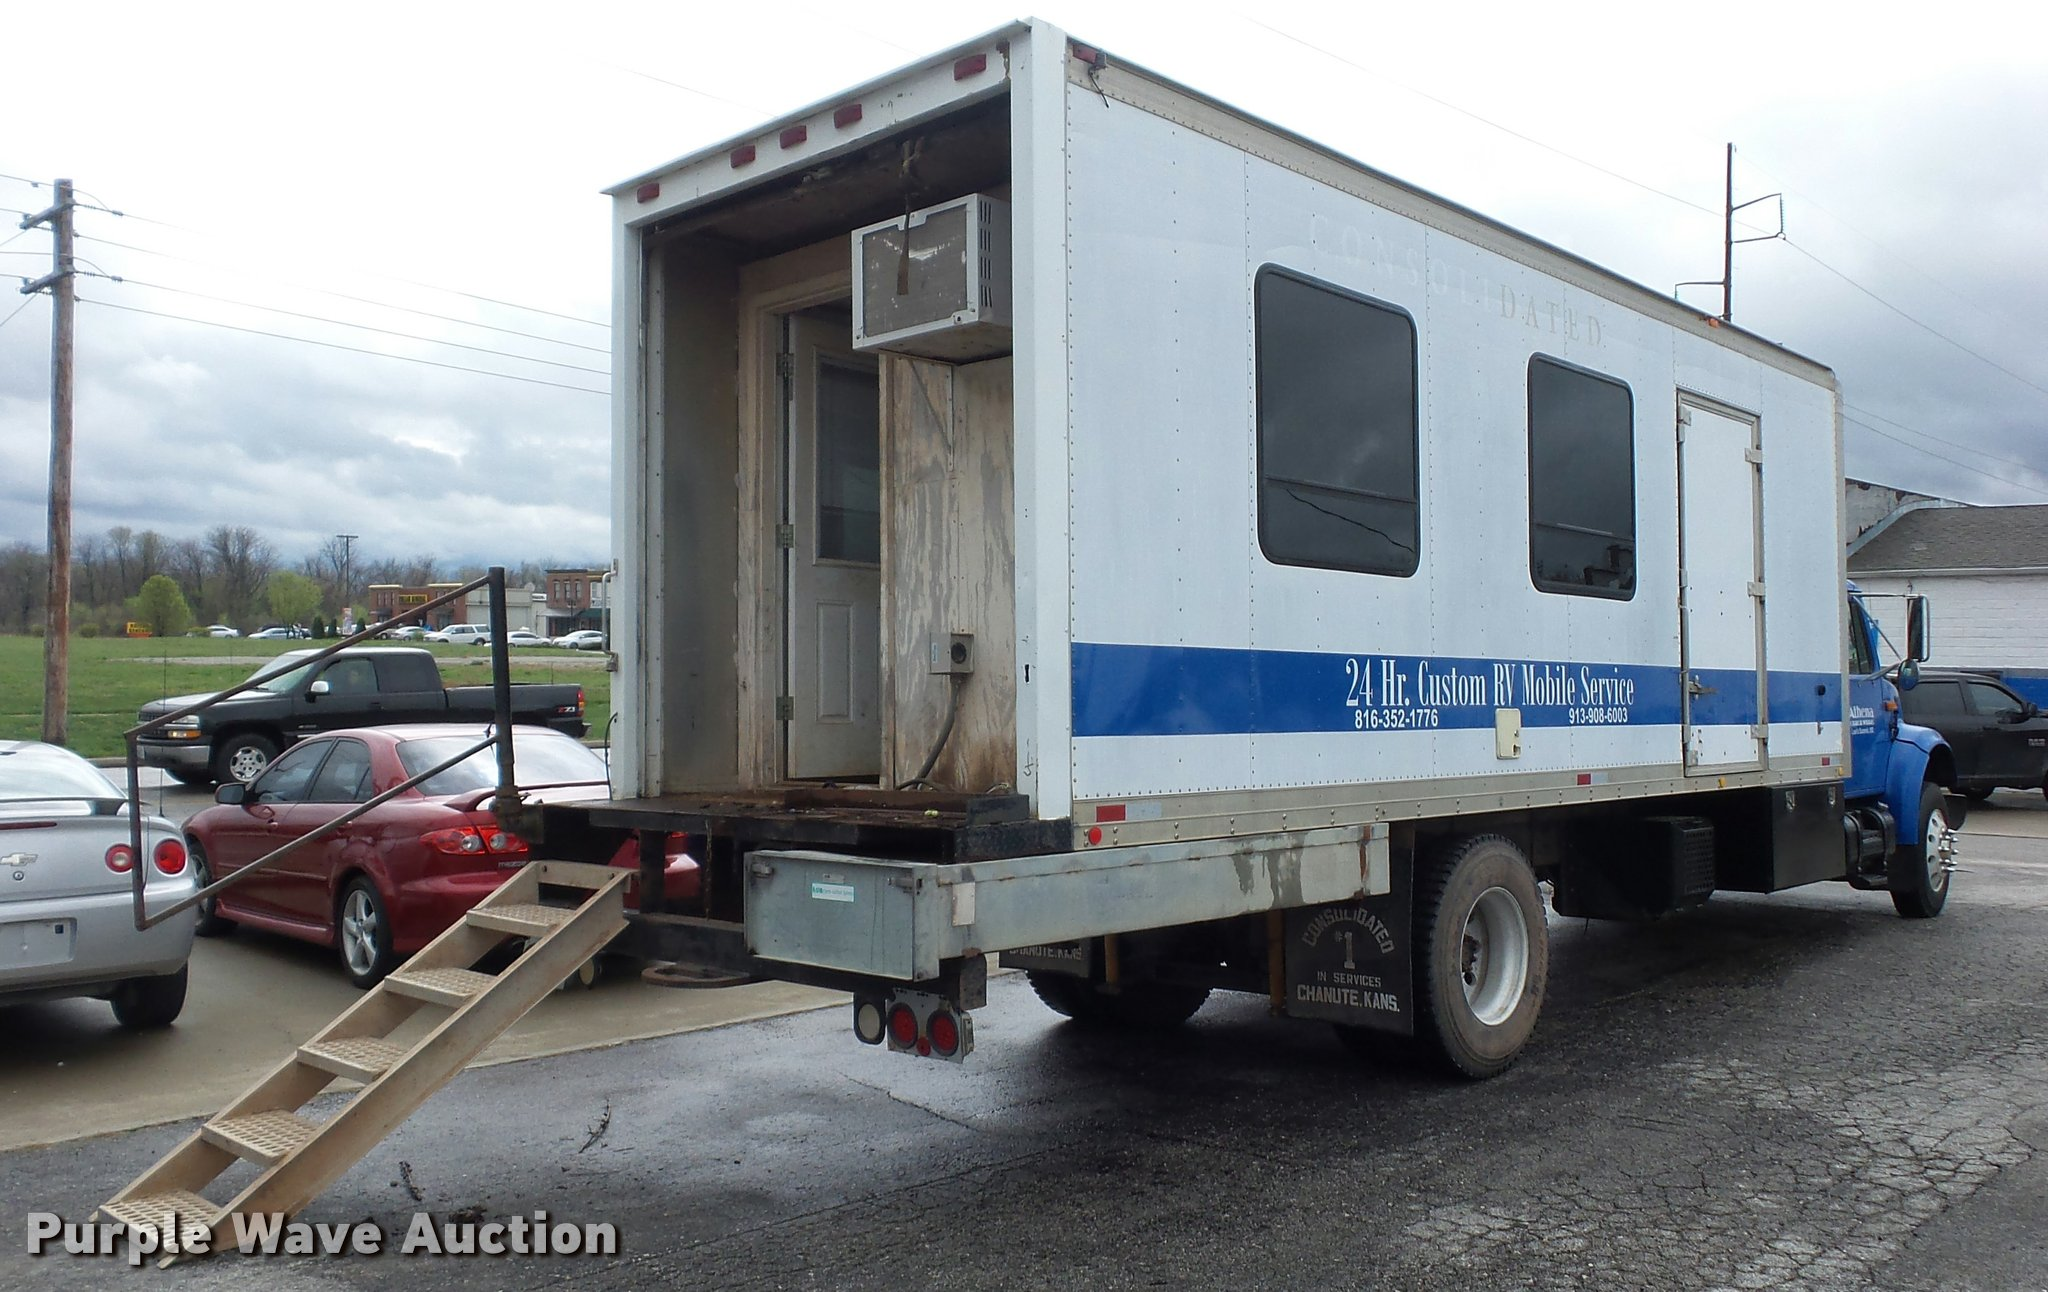 2001 International 4700 mobile office truck with generator